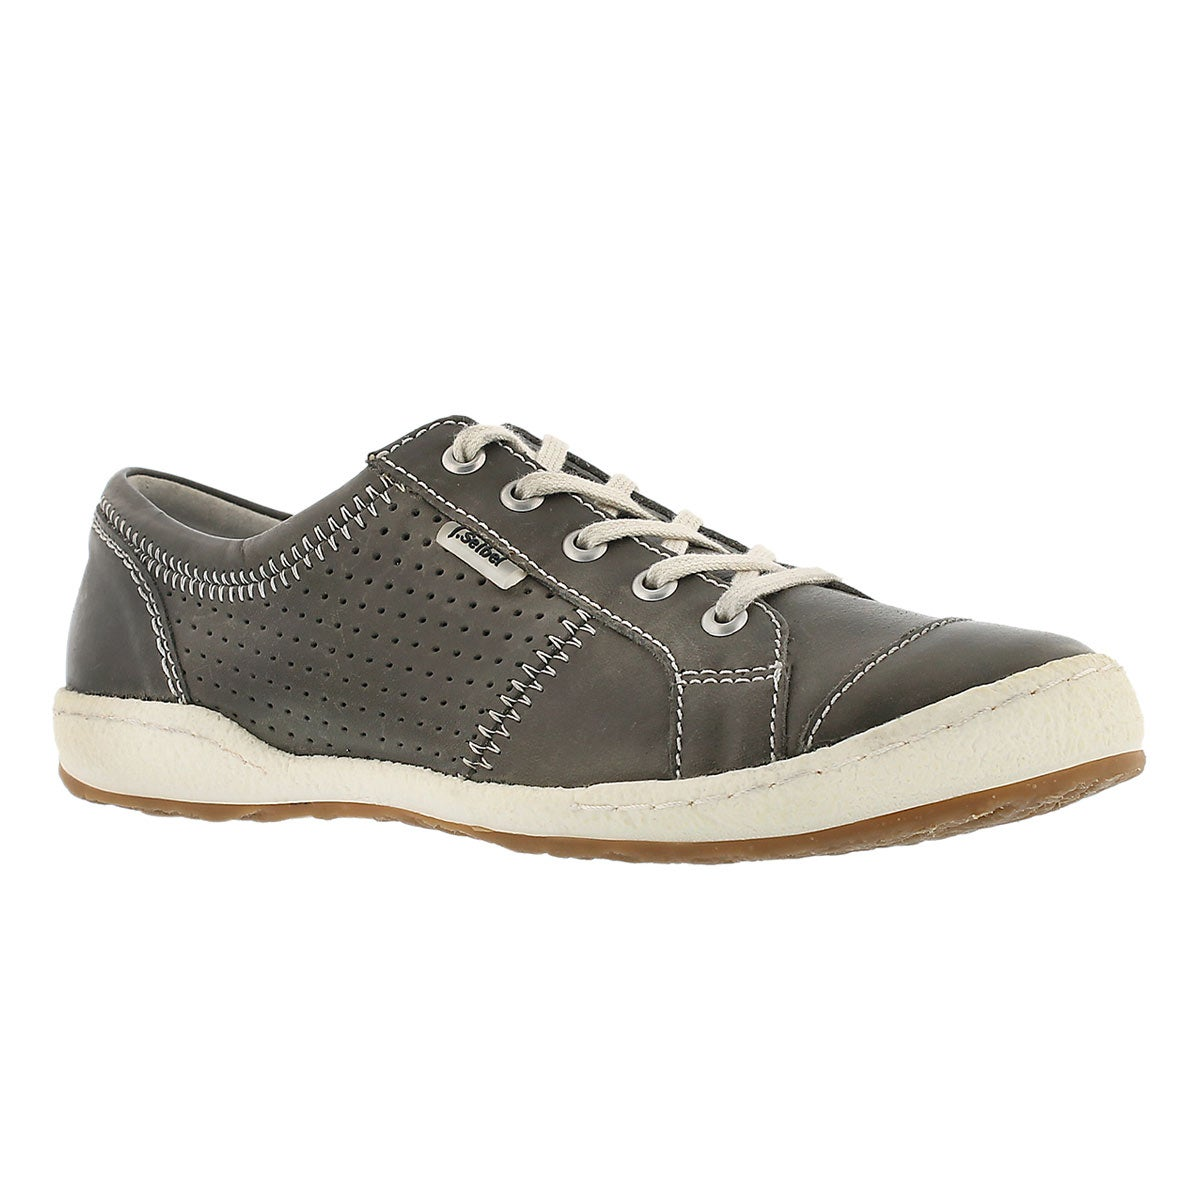 Women's CASPIAN grey leather lace-up casual shoes